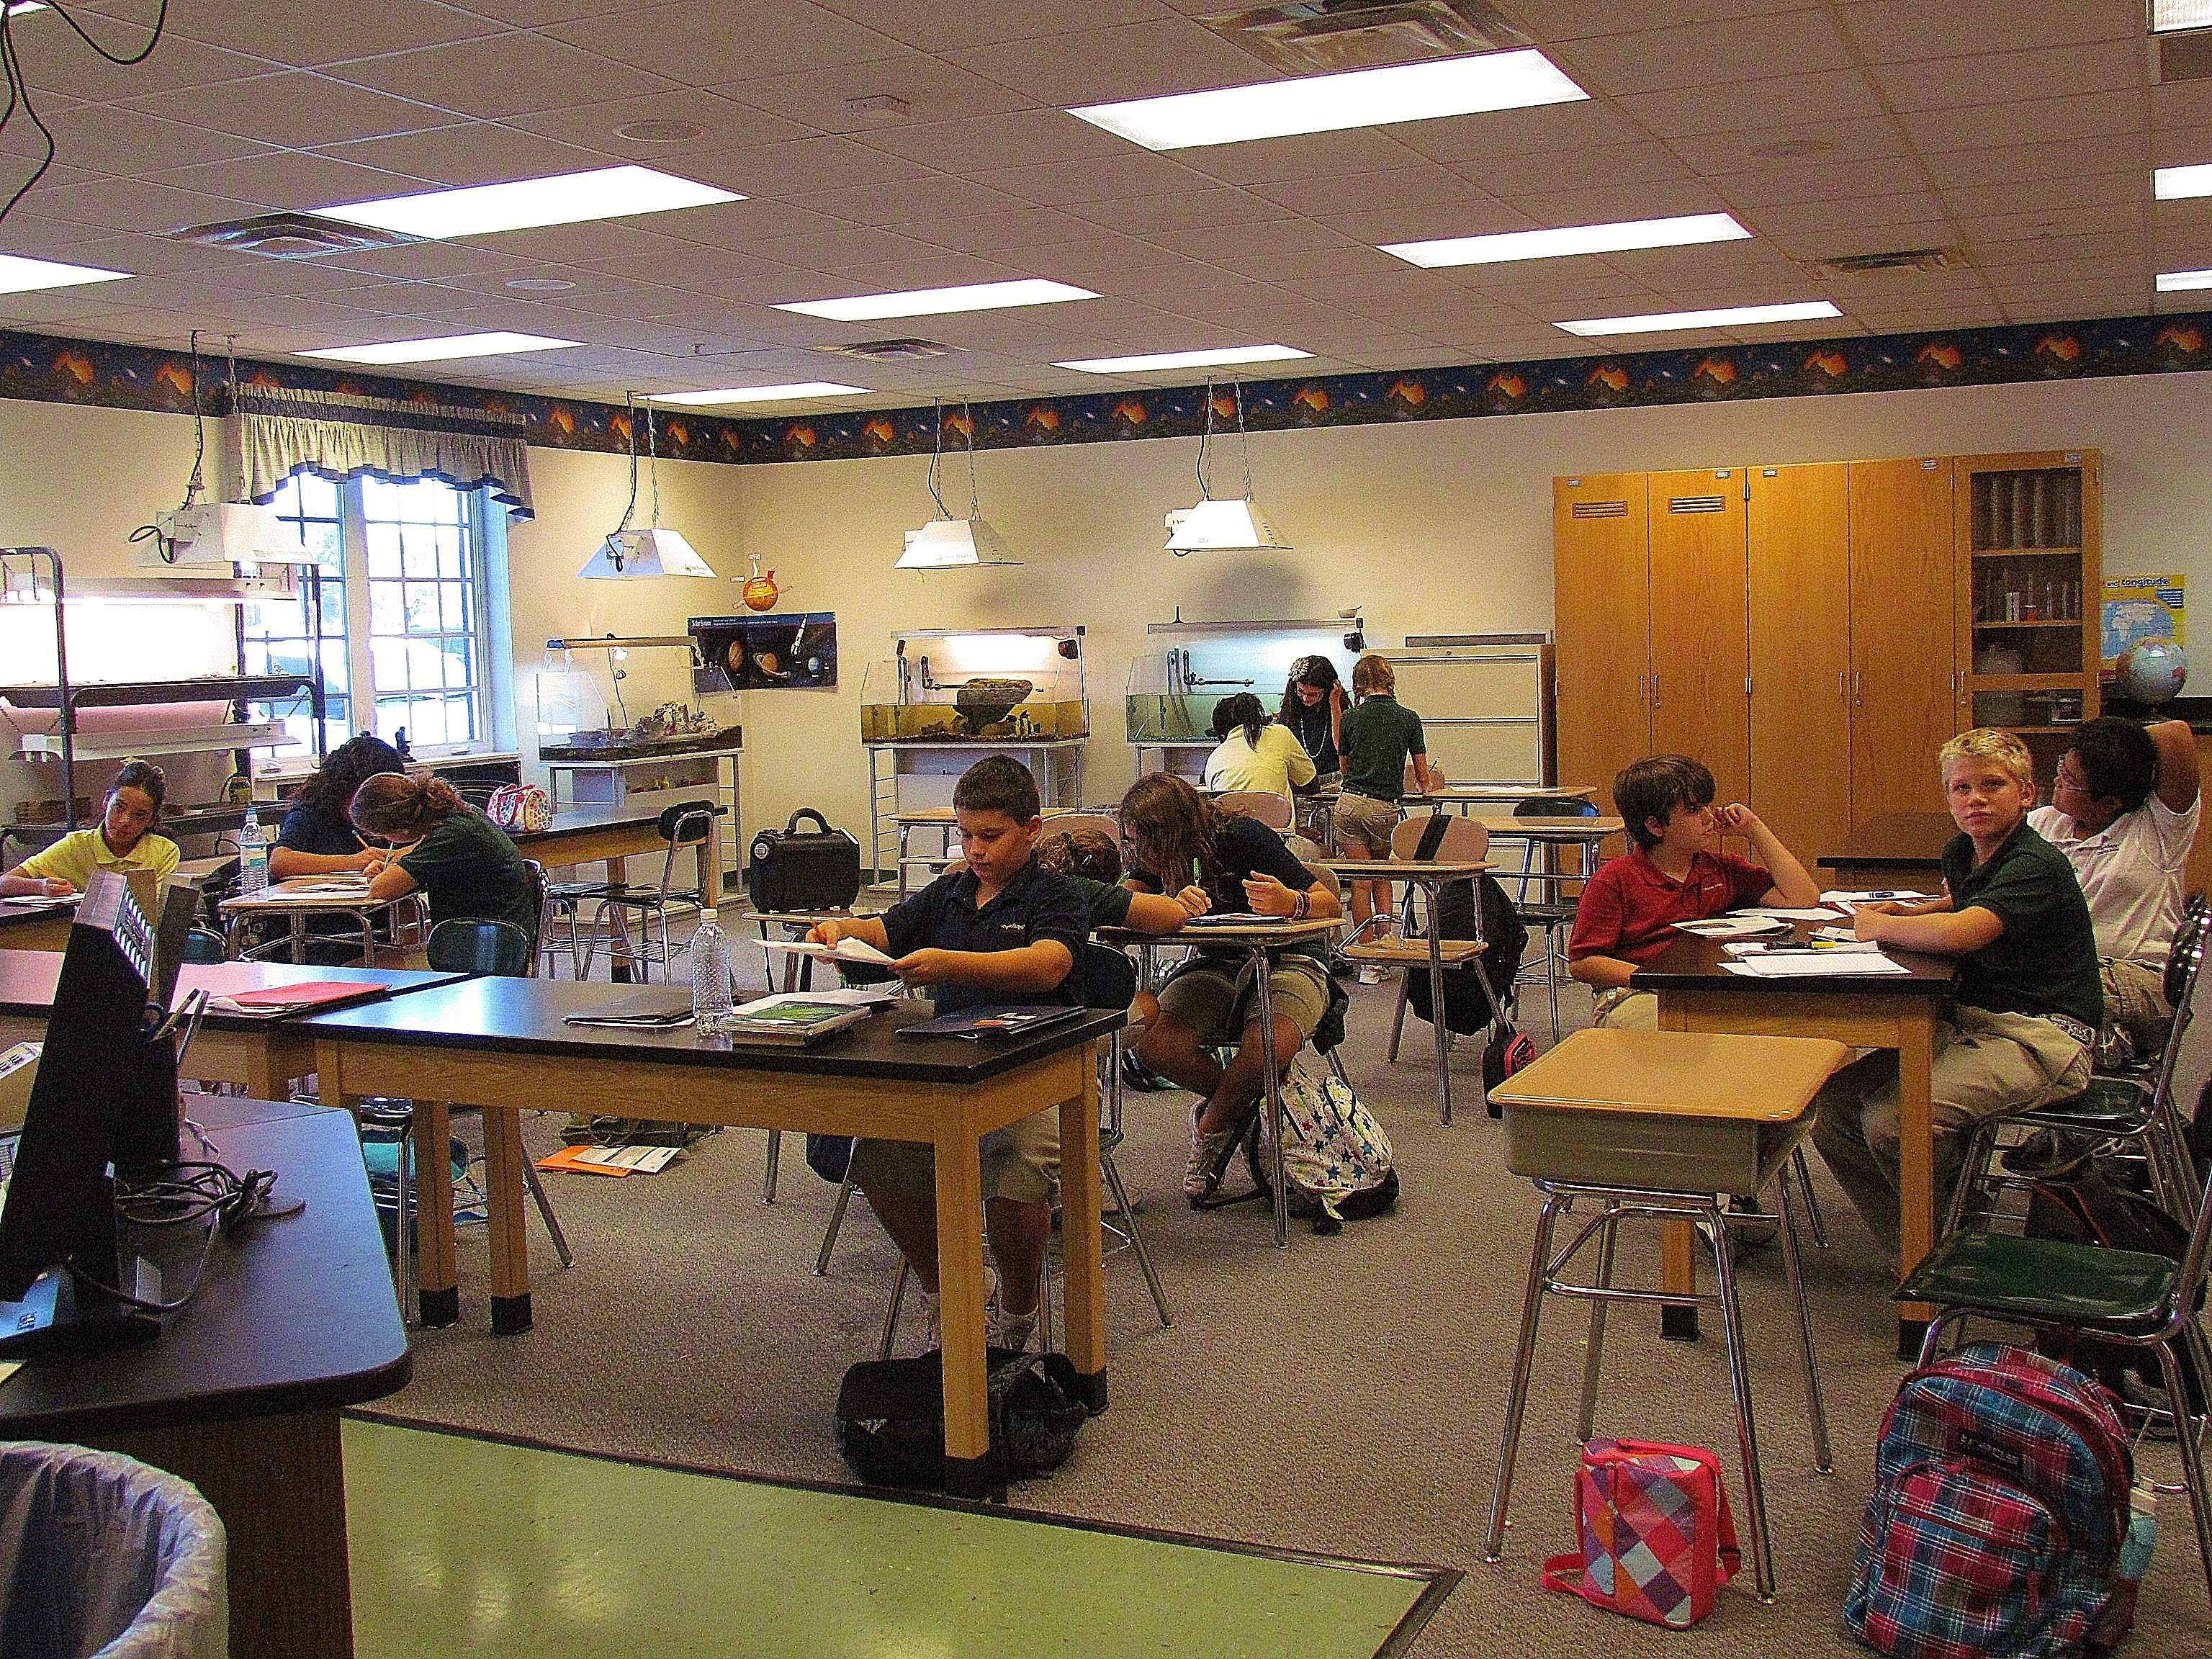 Middle School image 19 of 37